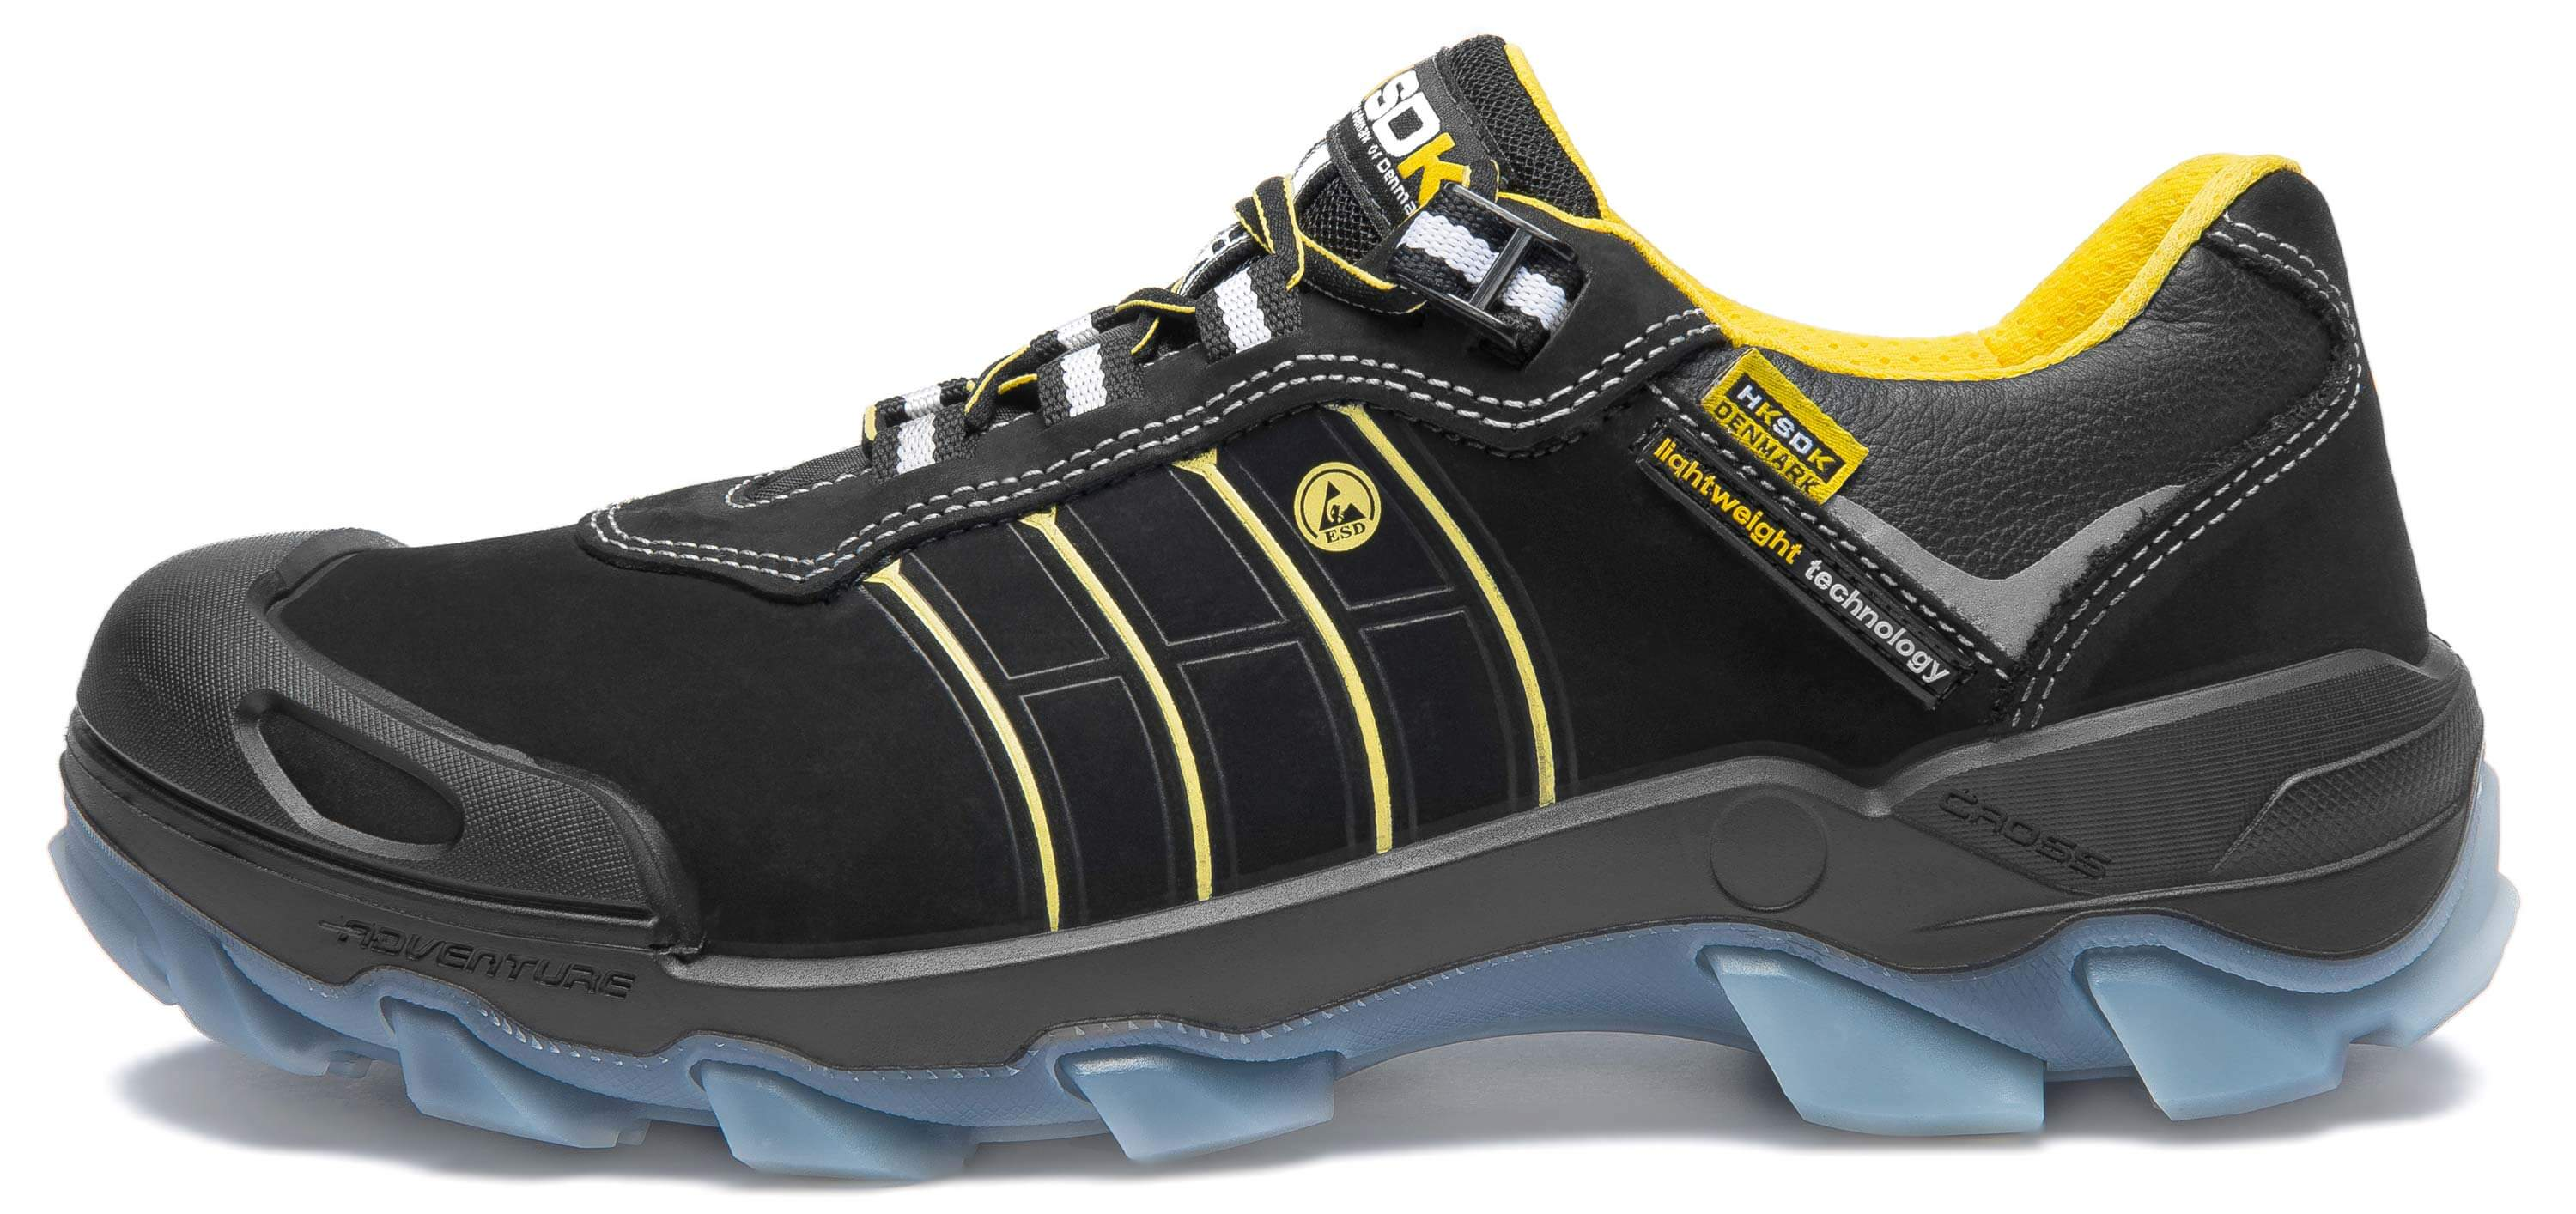 Air Sole Safety Shoes